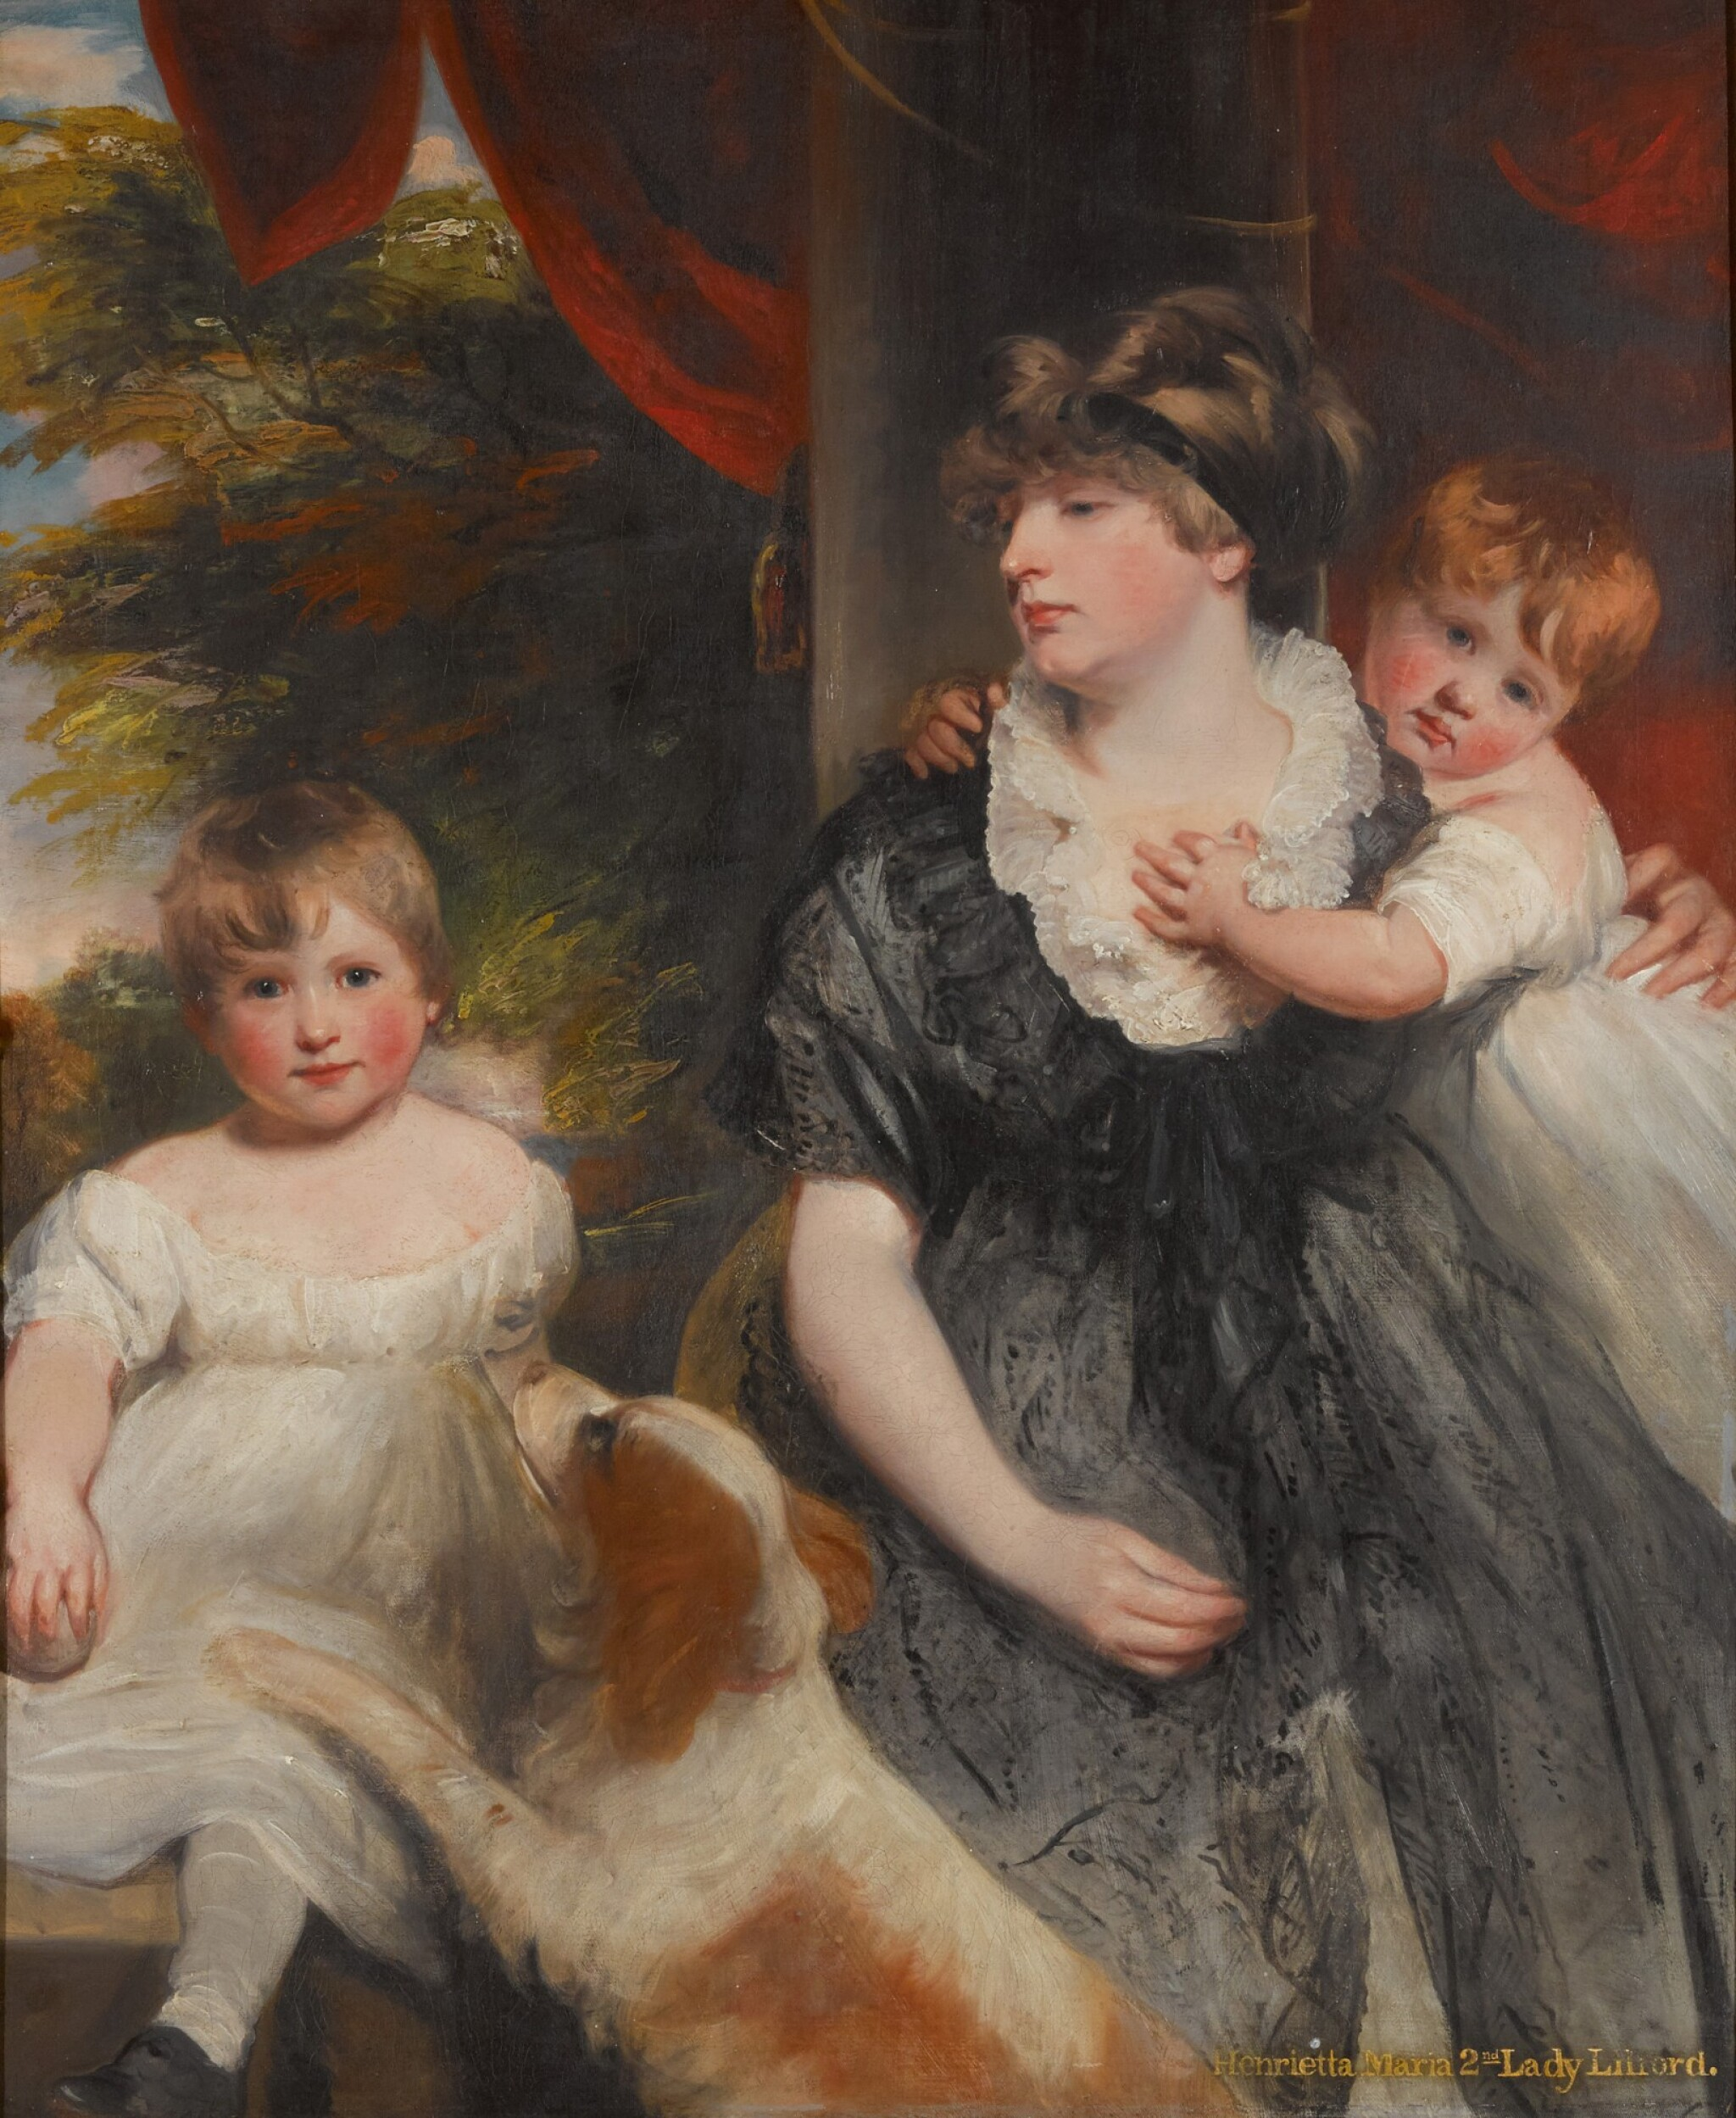 View full screen - View 1 of Lot 196. Henrietta Maria Vernon Atherton, 2nd Lady Lilford (d. 1820), of Atherton Hall, Leigh, with her two children.